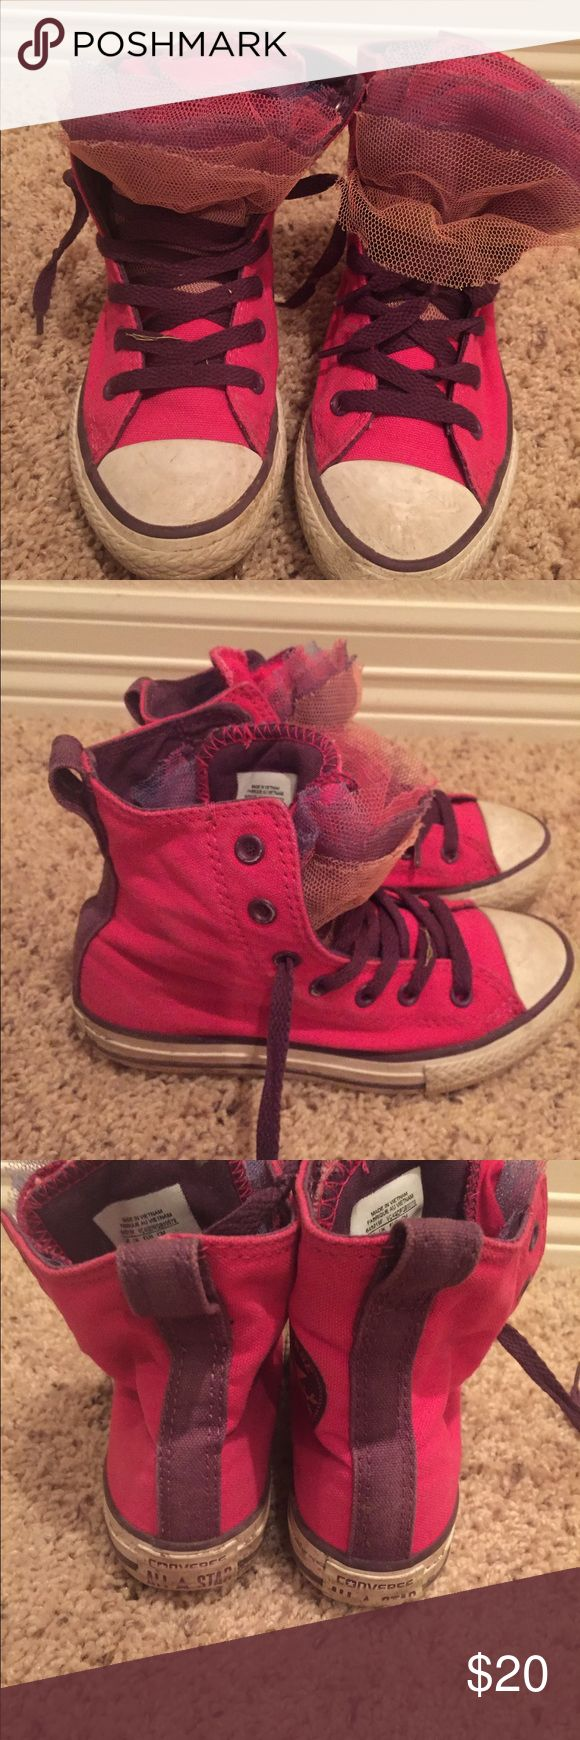 Girls Converse high tops Girls Converse High Tops. Pink with Purple laces and trims. Multi colored tulle tongues. Fun and flirty! Sz 13. Converse Shoes Sneakers